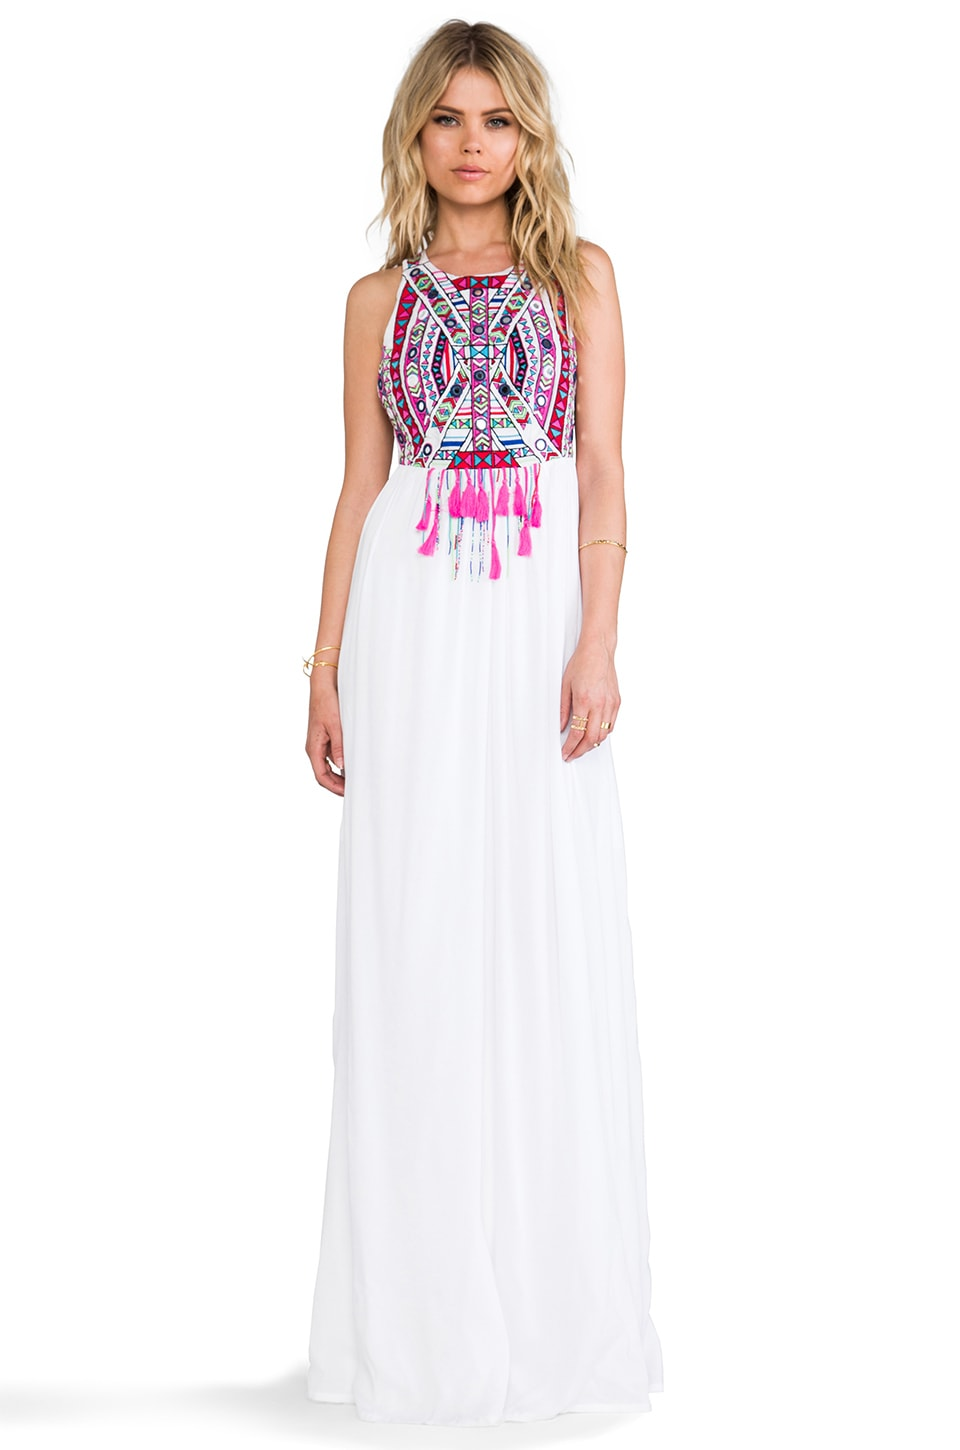 Mara Hoffman Mirror Embroidery Maxi Dress in White